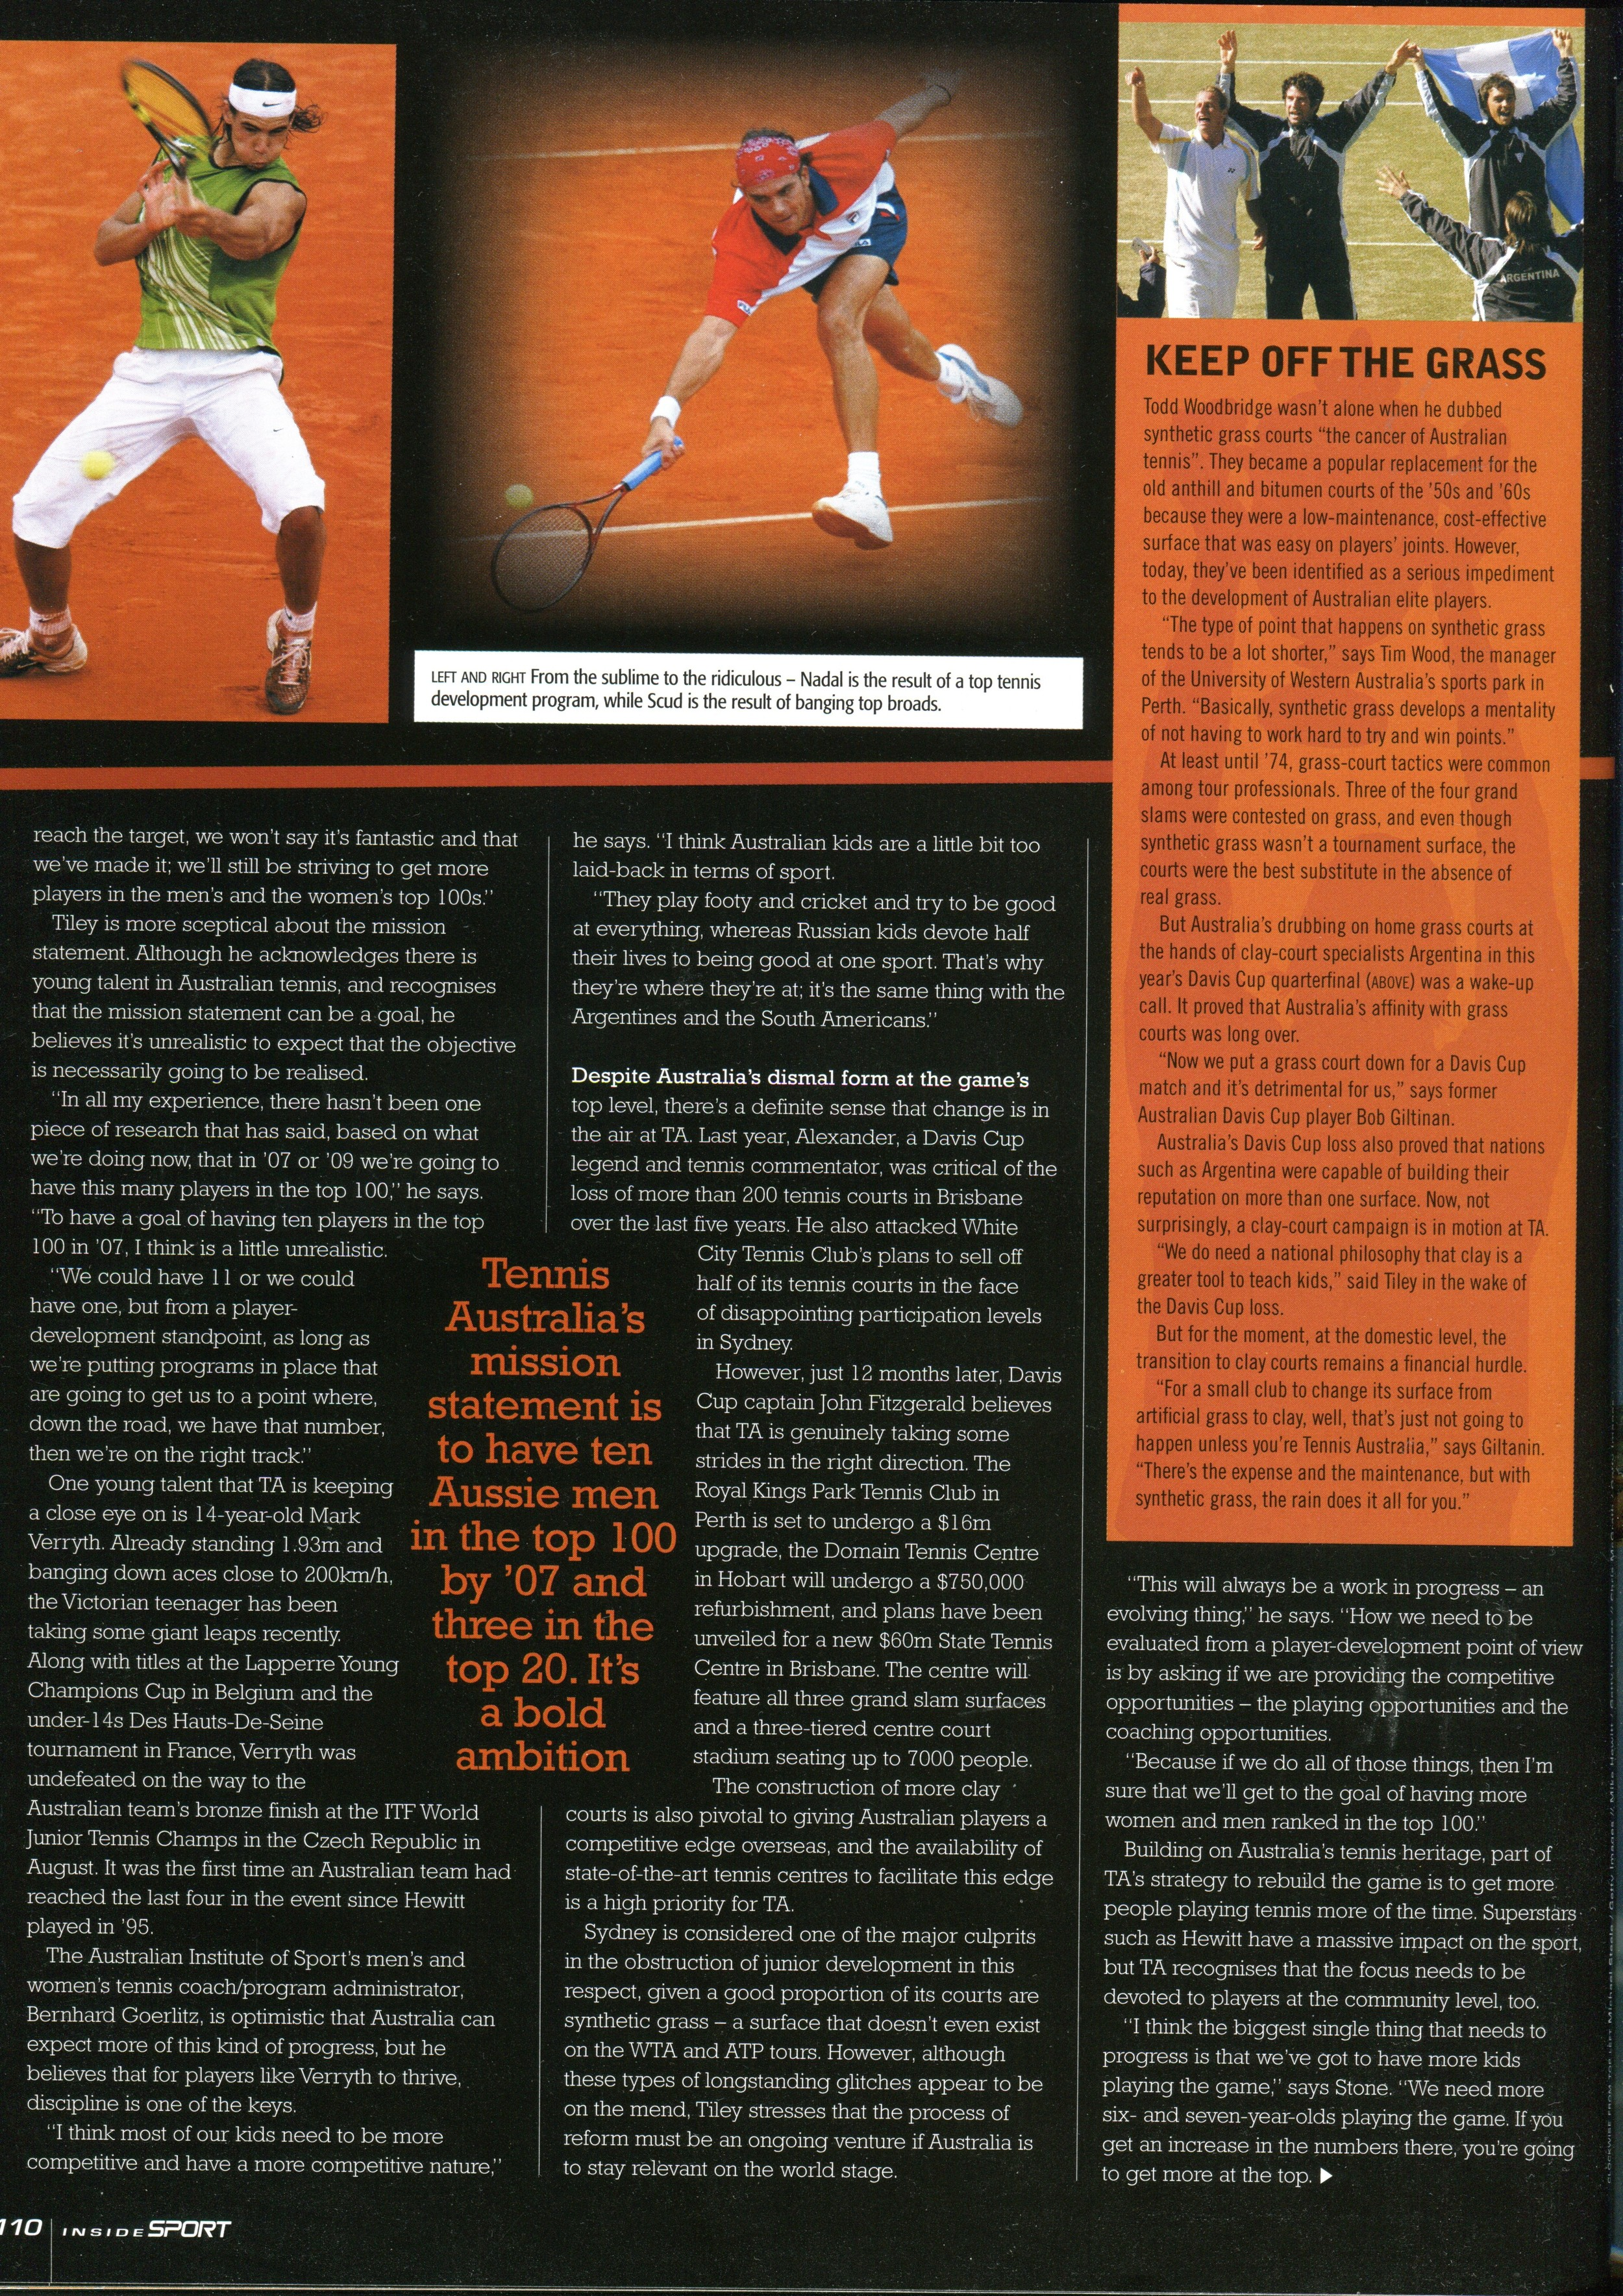 INSIDE SPORT NOVEMBER 2005 AUSTRALIAN TENNIS FUTURE FEATURE (6).jpg